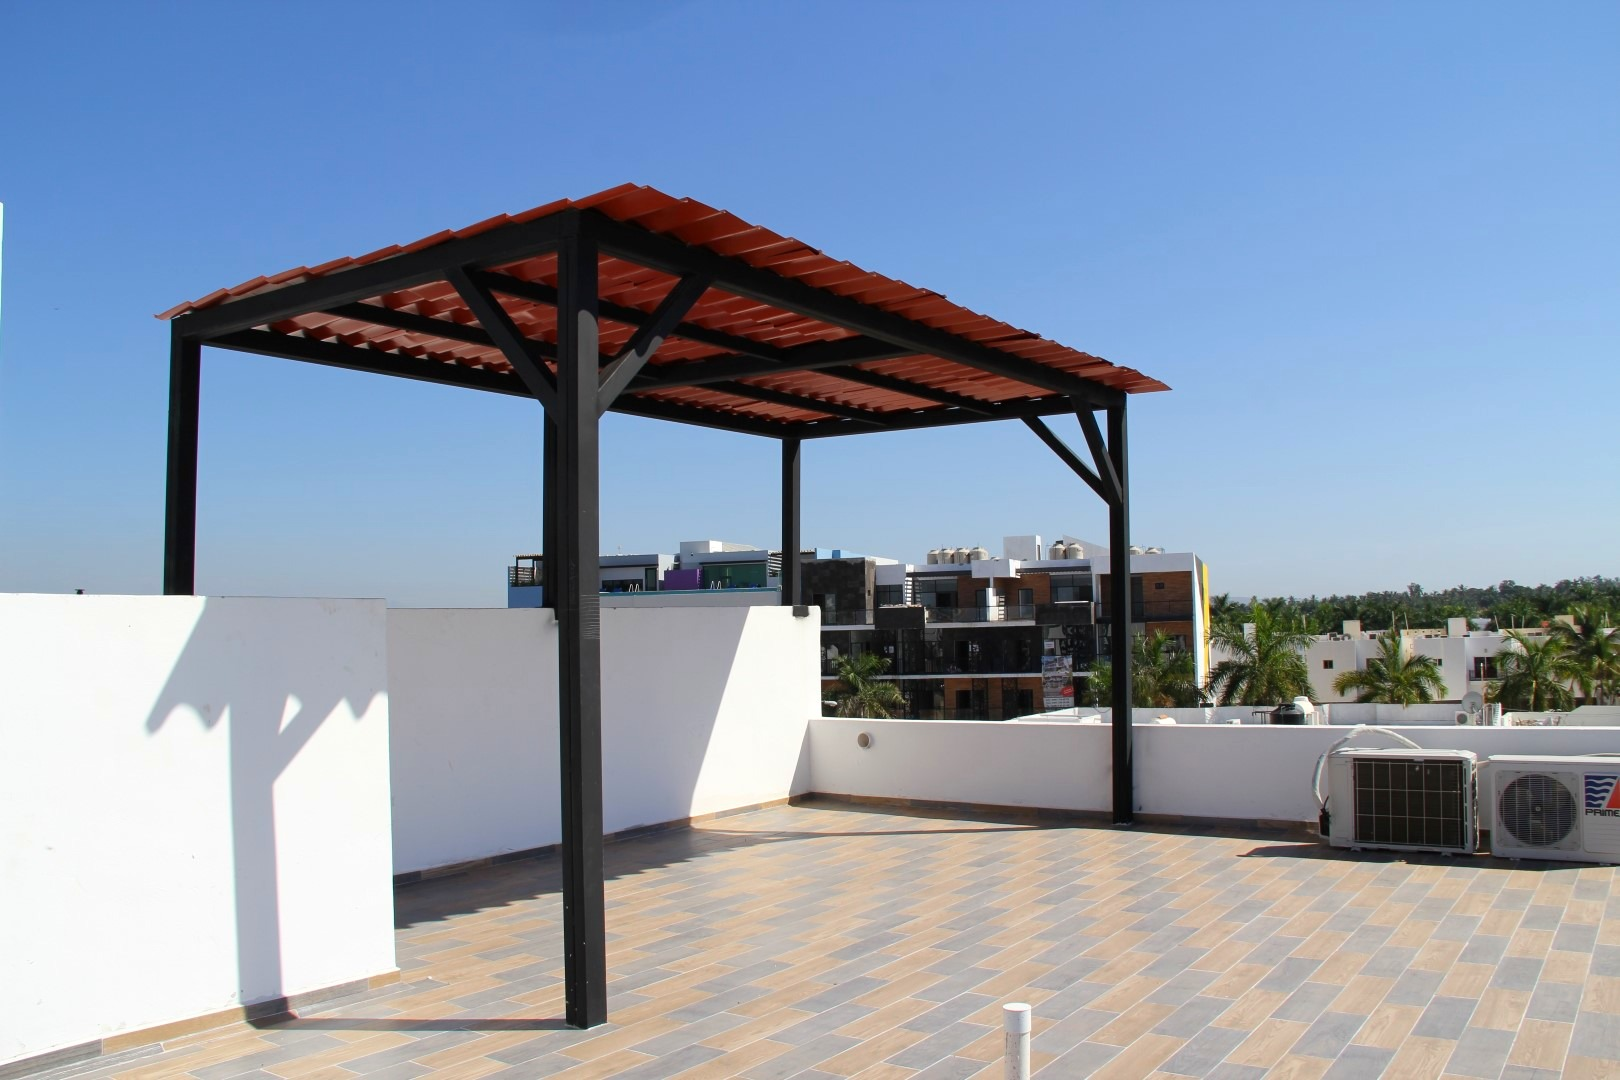 Covered roof-top area.